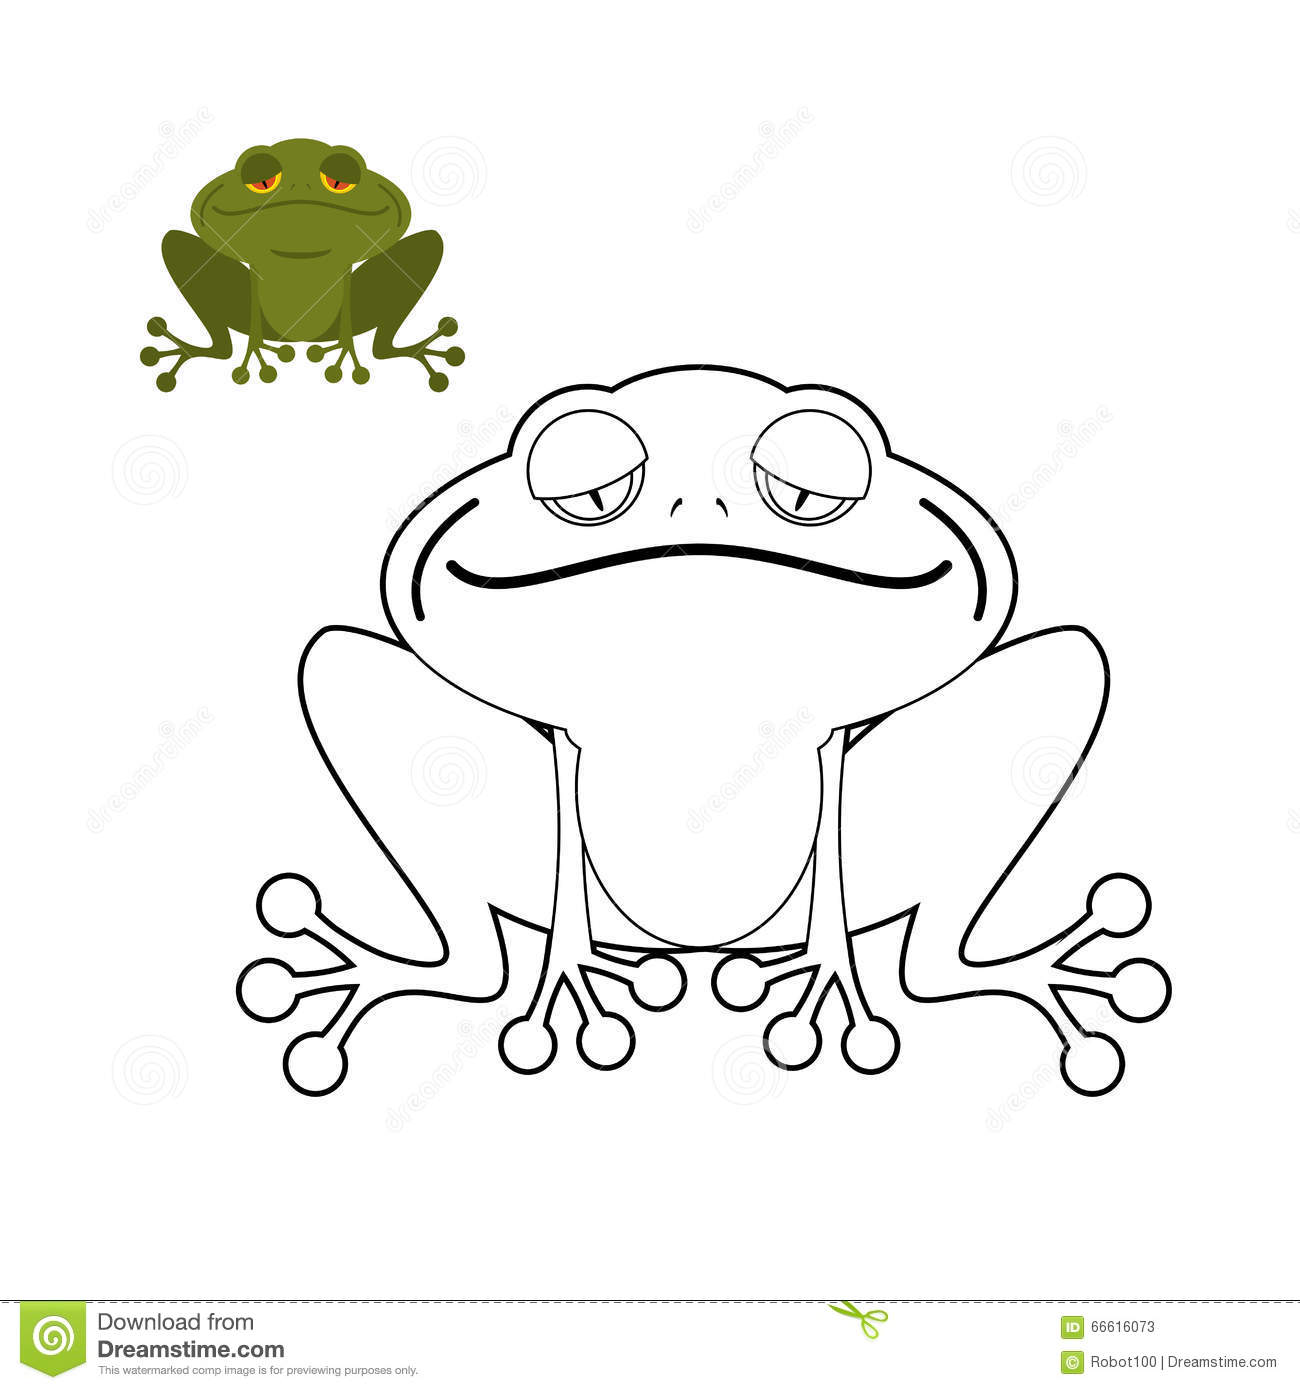 frog coloring book funny amphibious reptile animal from swamp stock vector illustration of. Black Bedroom Furniture Sets. Home Design Ideas